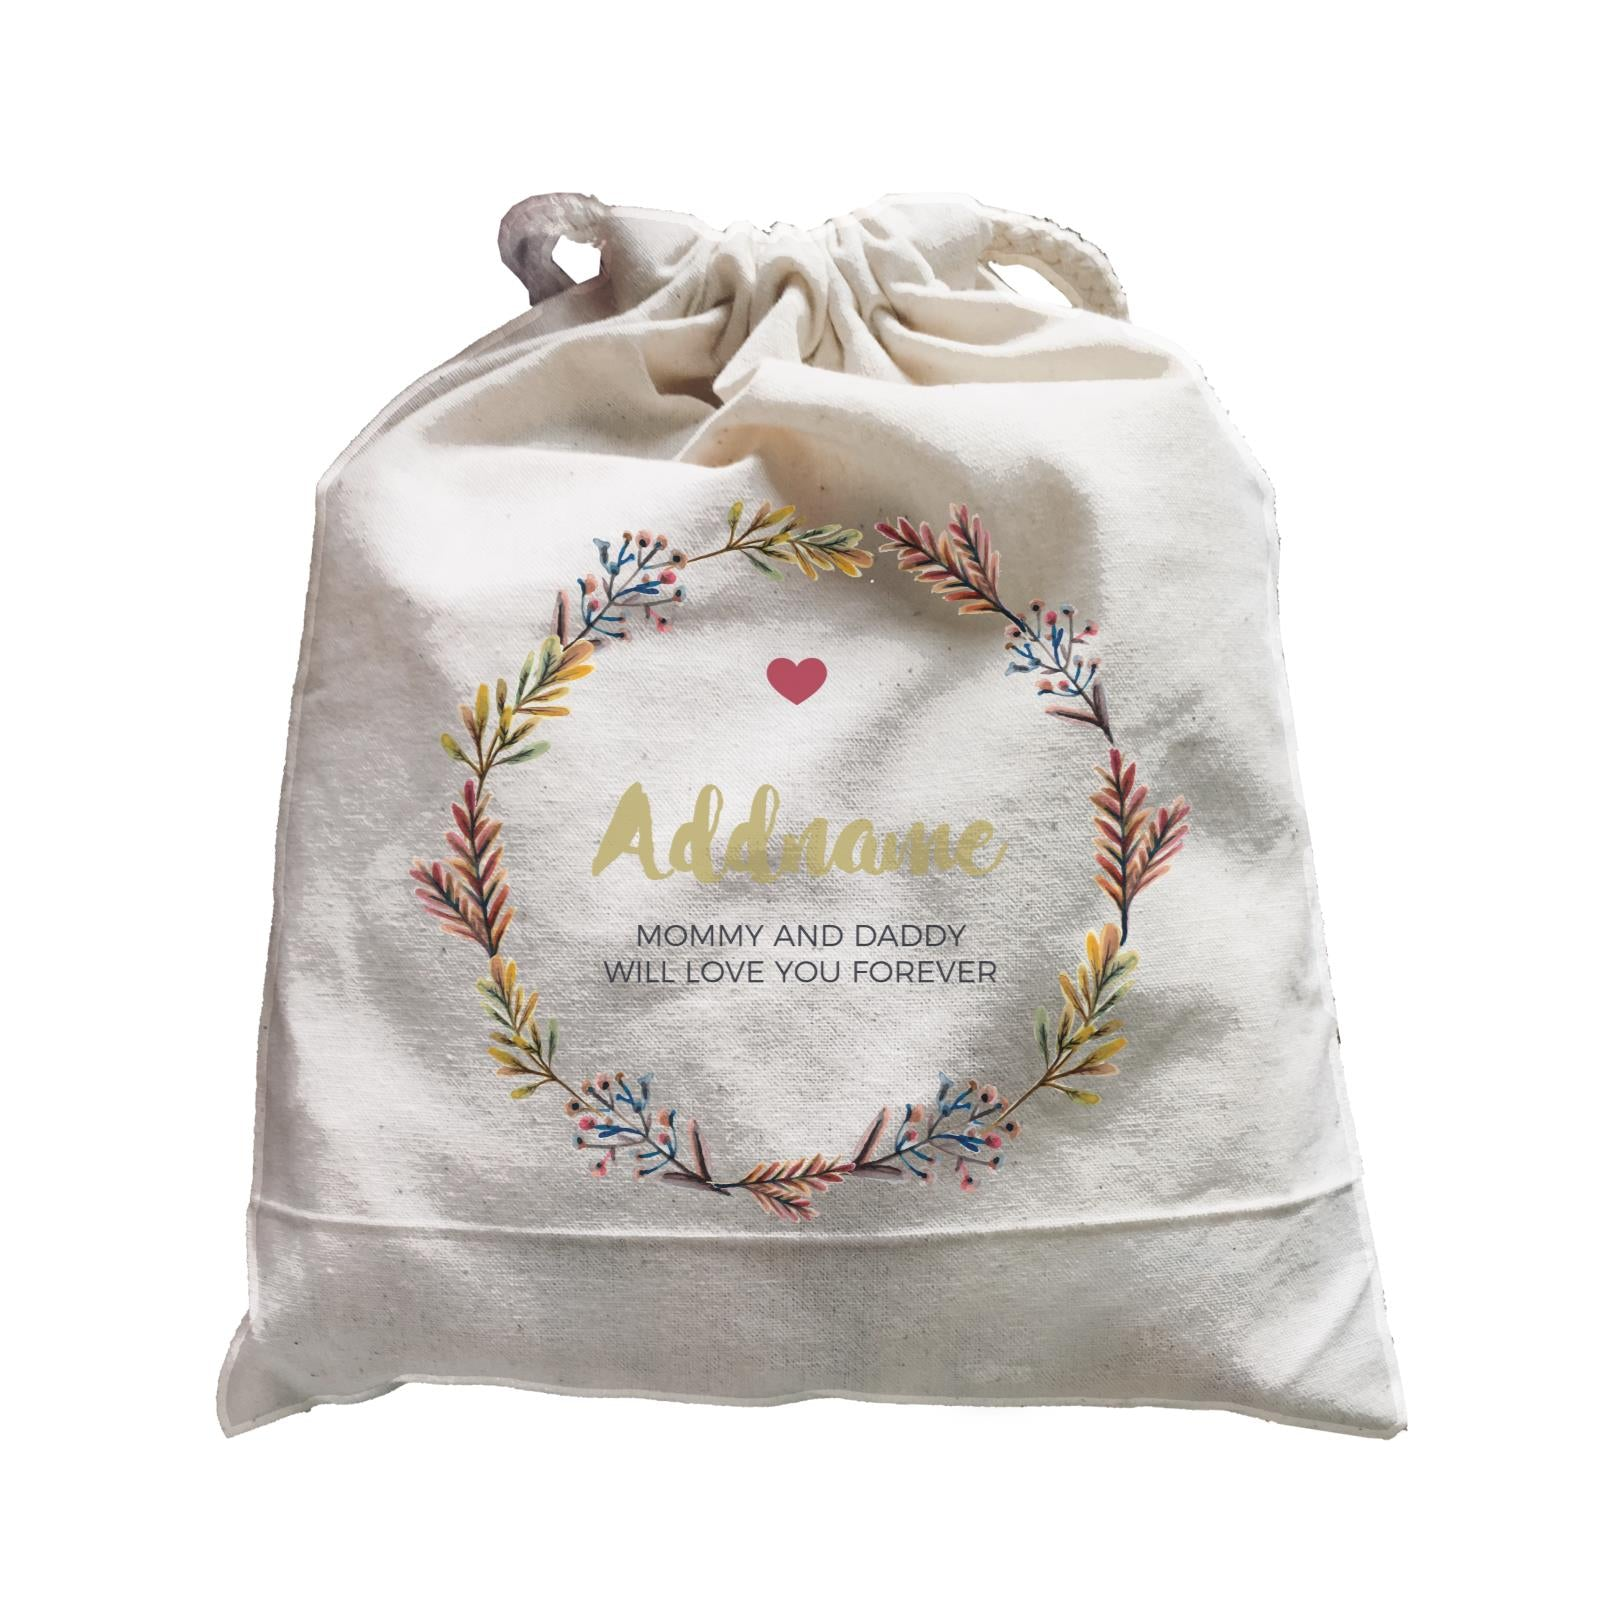 Autumn Colours Wreath Personalizable with Name and Text Satchel